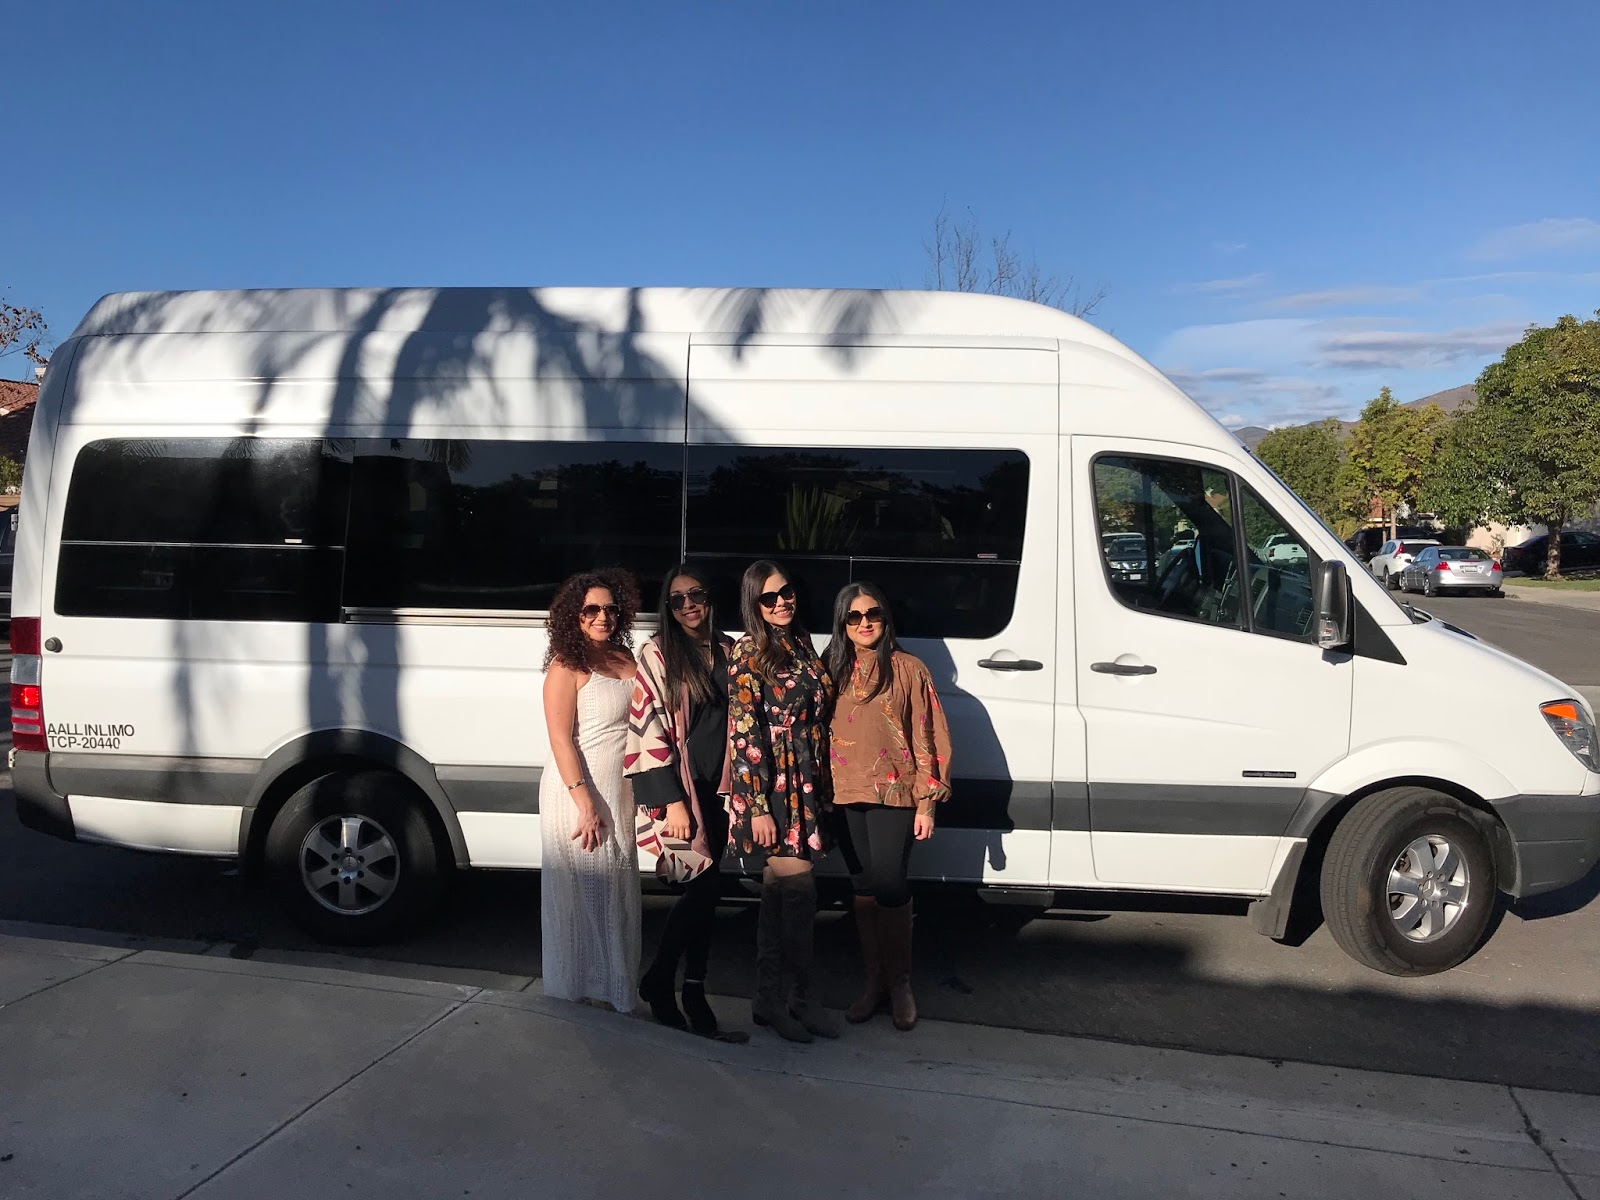 Aall in Limo tour, Aall in Limo blogger tour, Aall in Limo Temecula wine tour